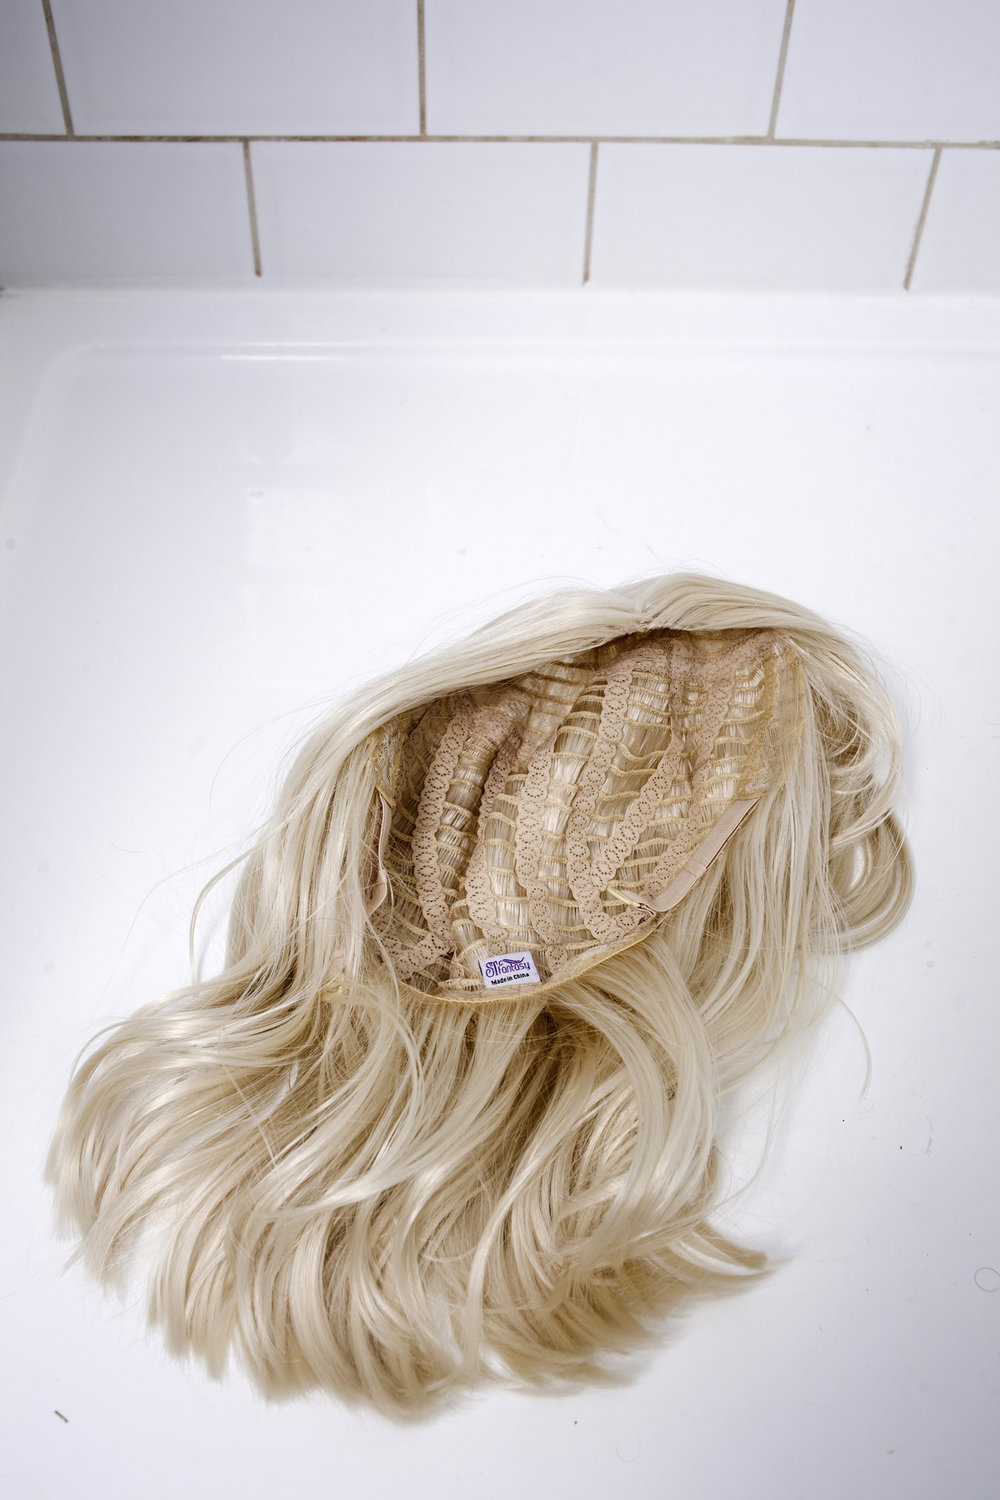 DRESS REHAB Wig Takes Shower #dressltd